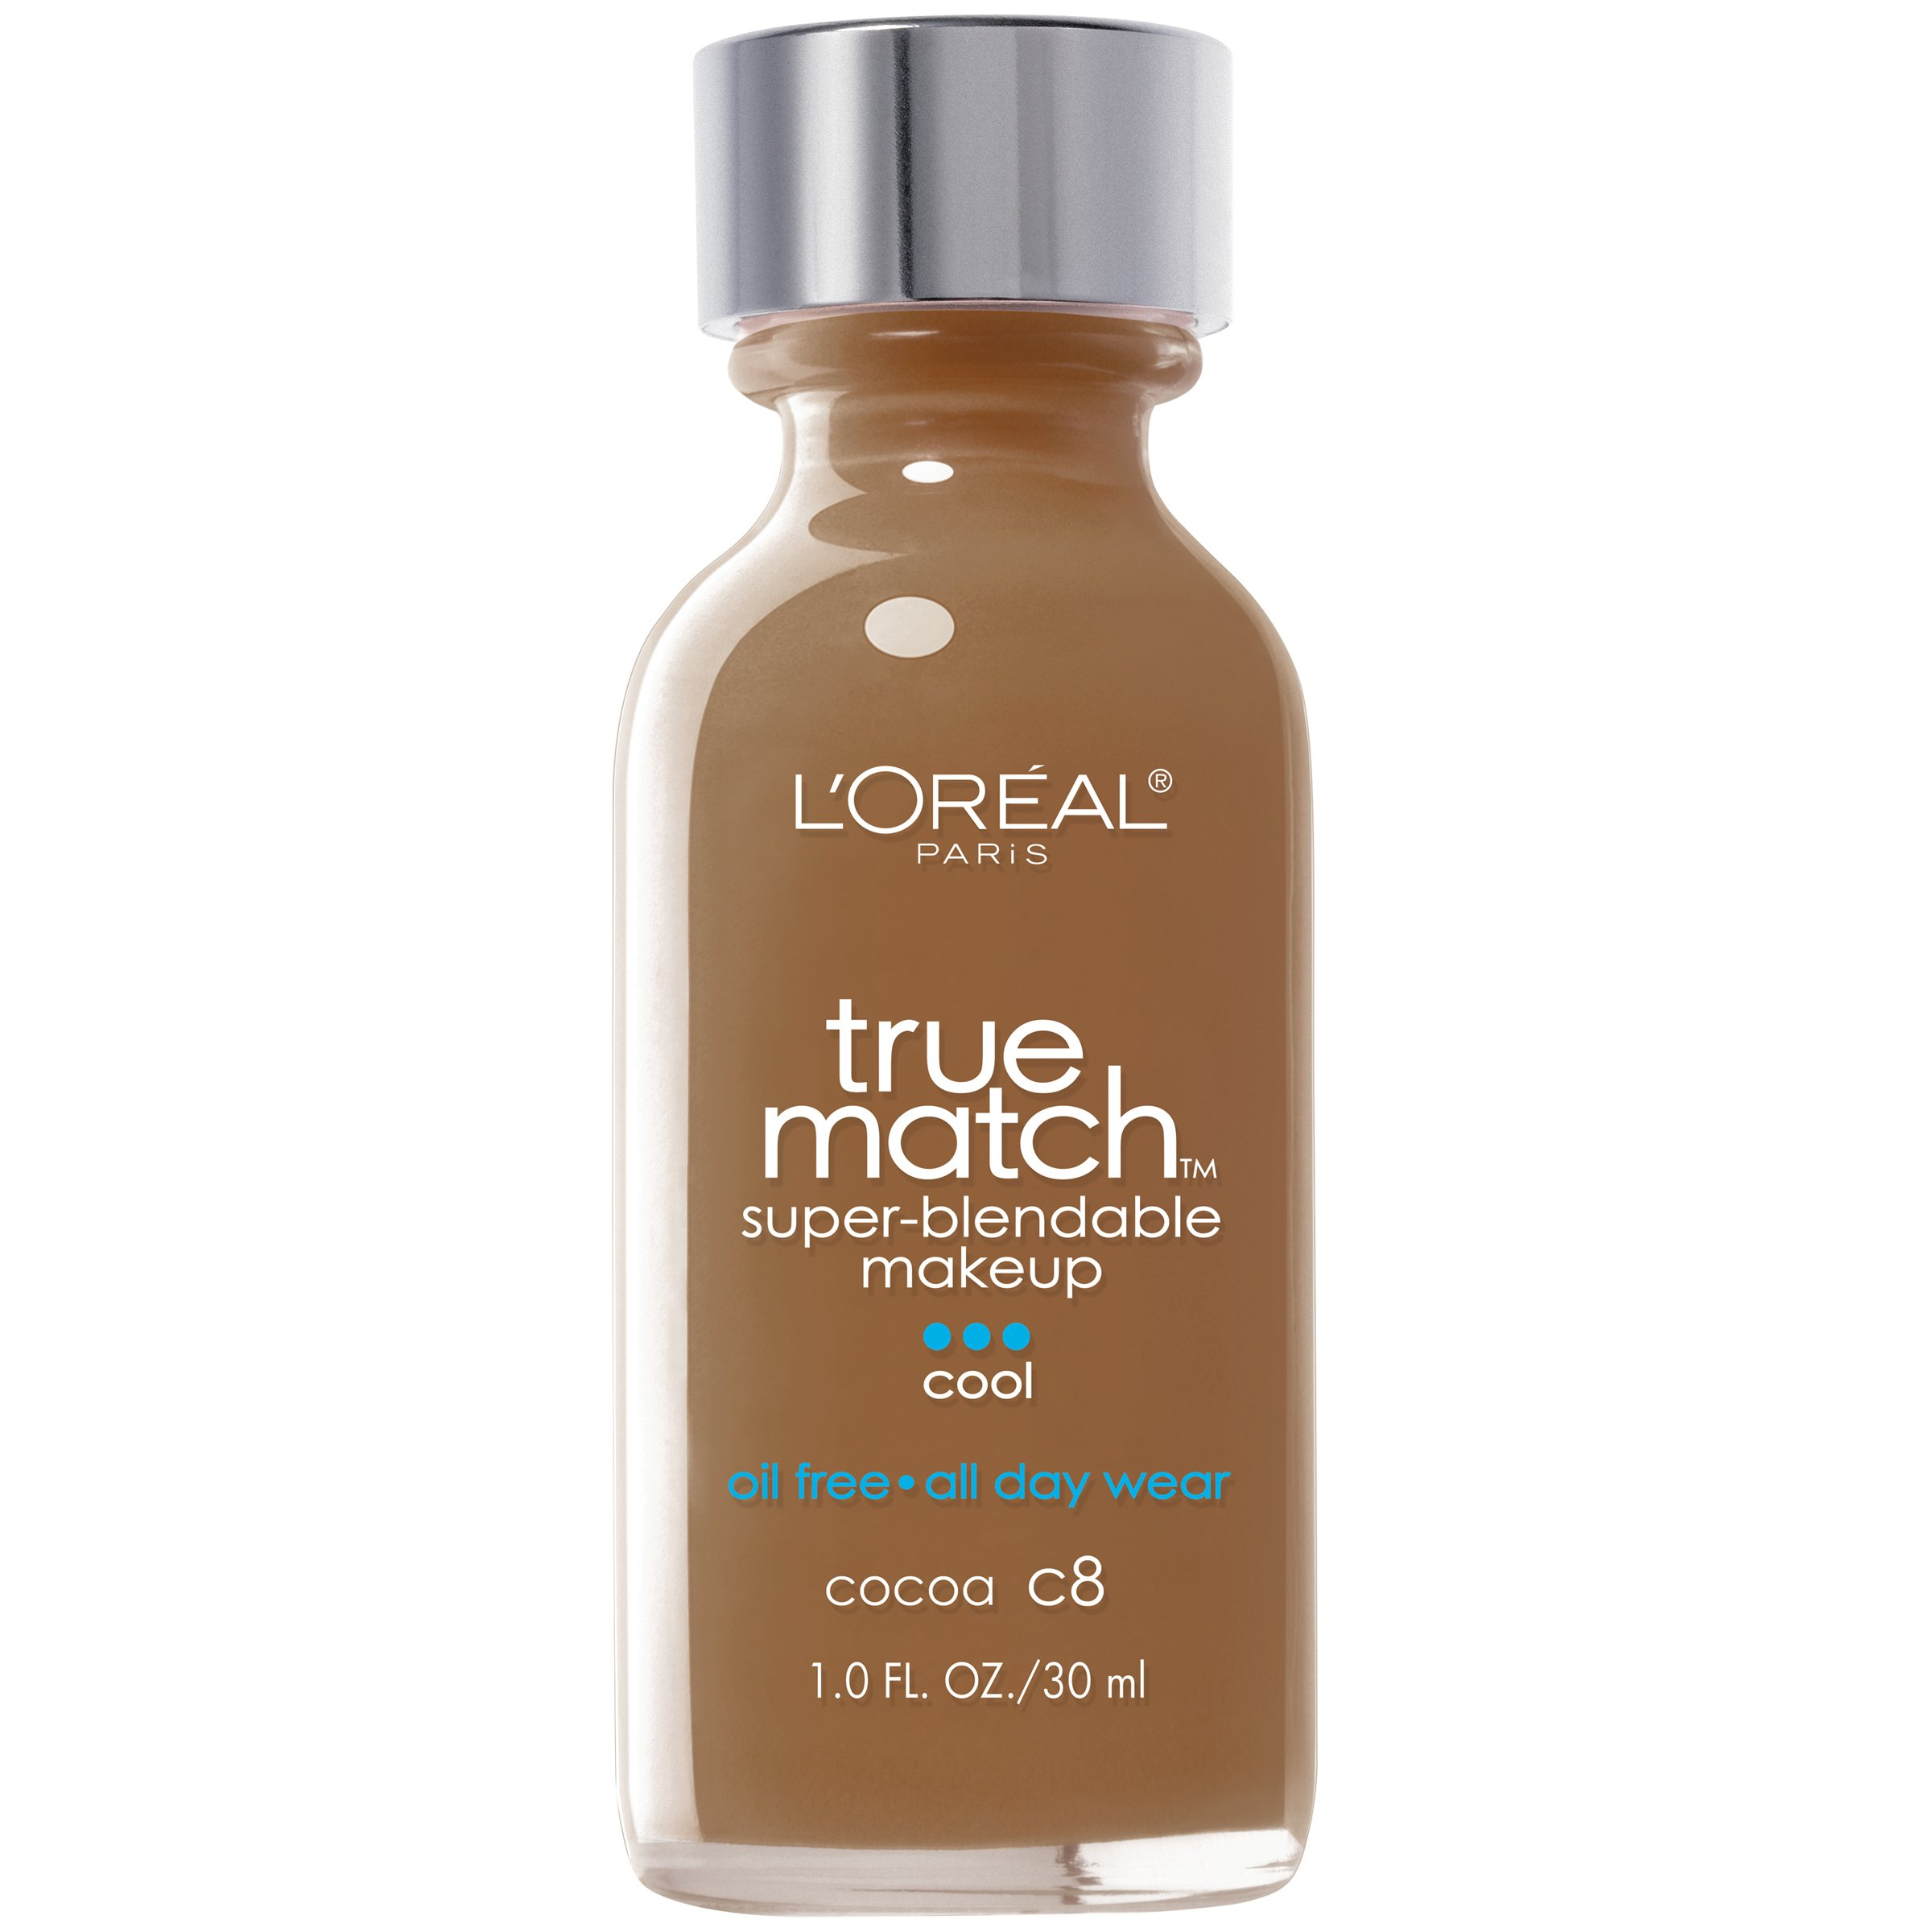 L'Oreal Paris Makeup True Match Super-Blendable Liquid Foundation, Cocoa C8, 1 Fl Oz,1 Count